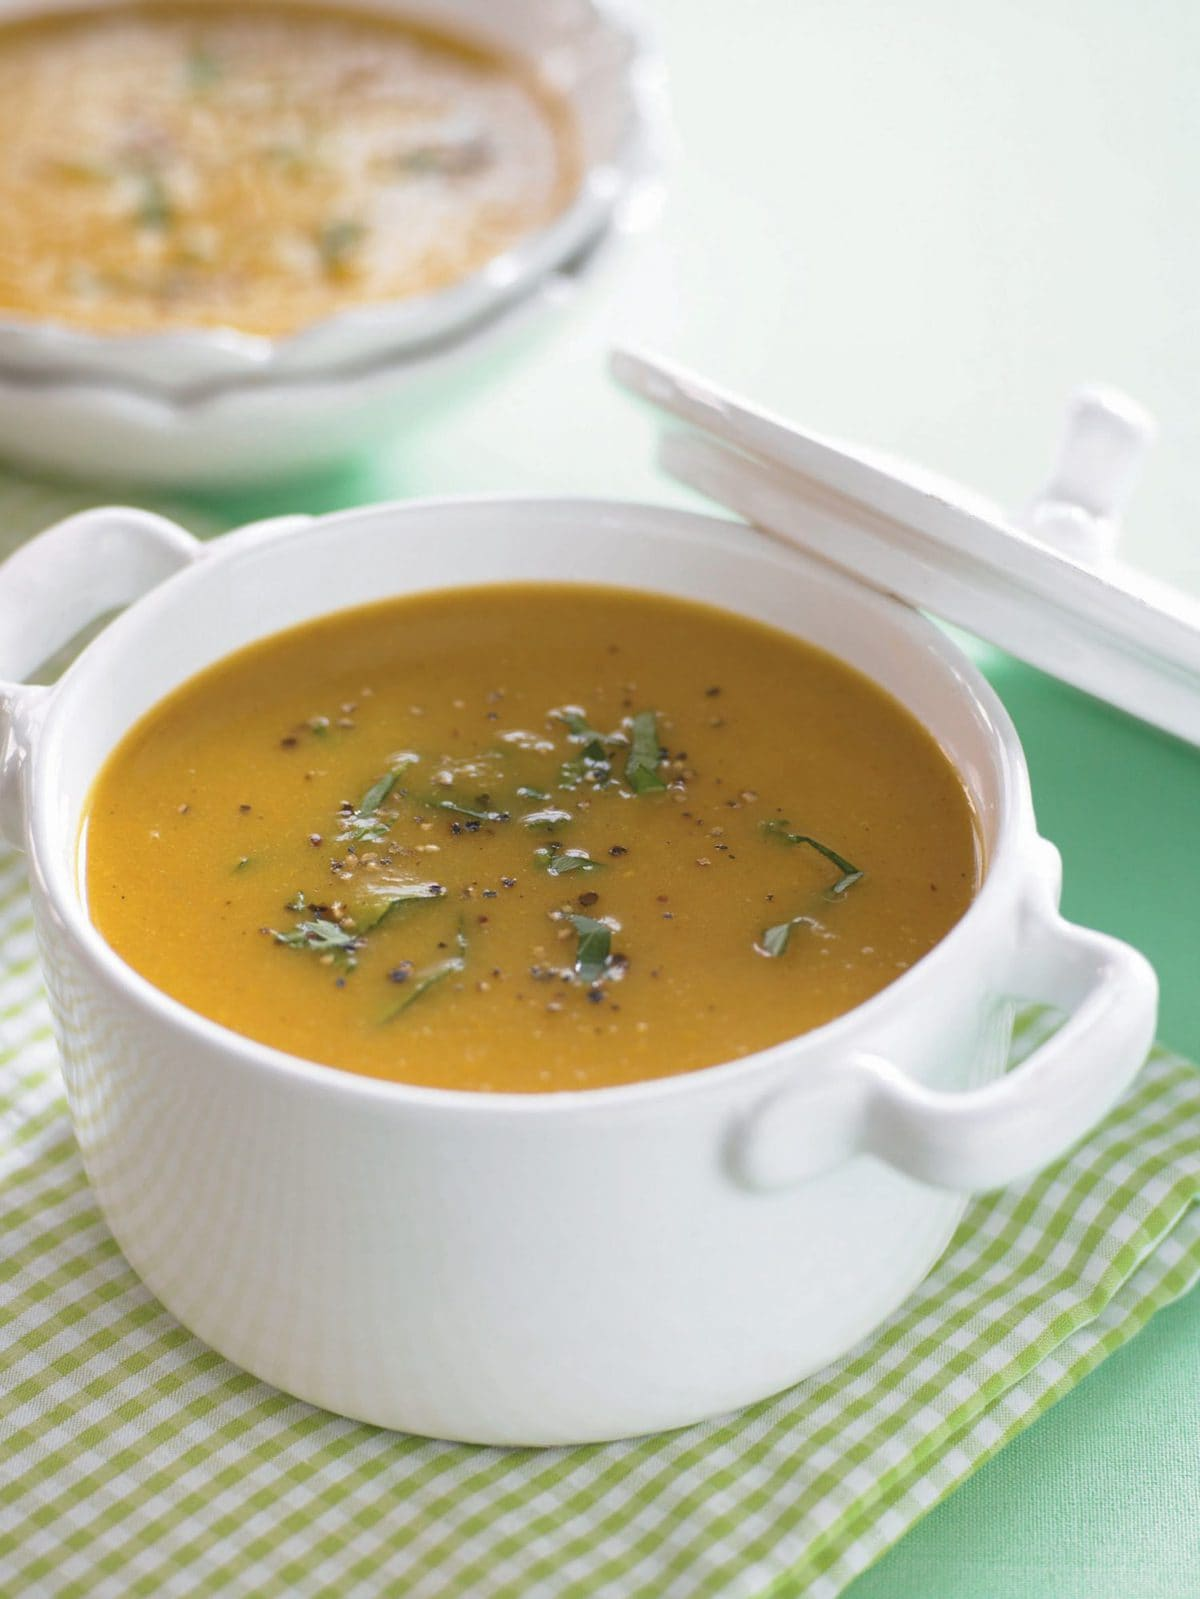 Pear and parsnip soup